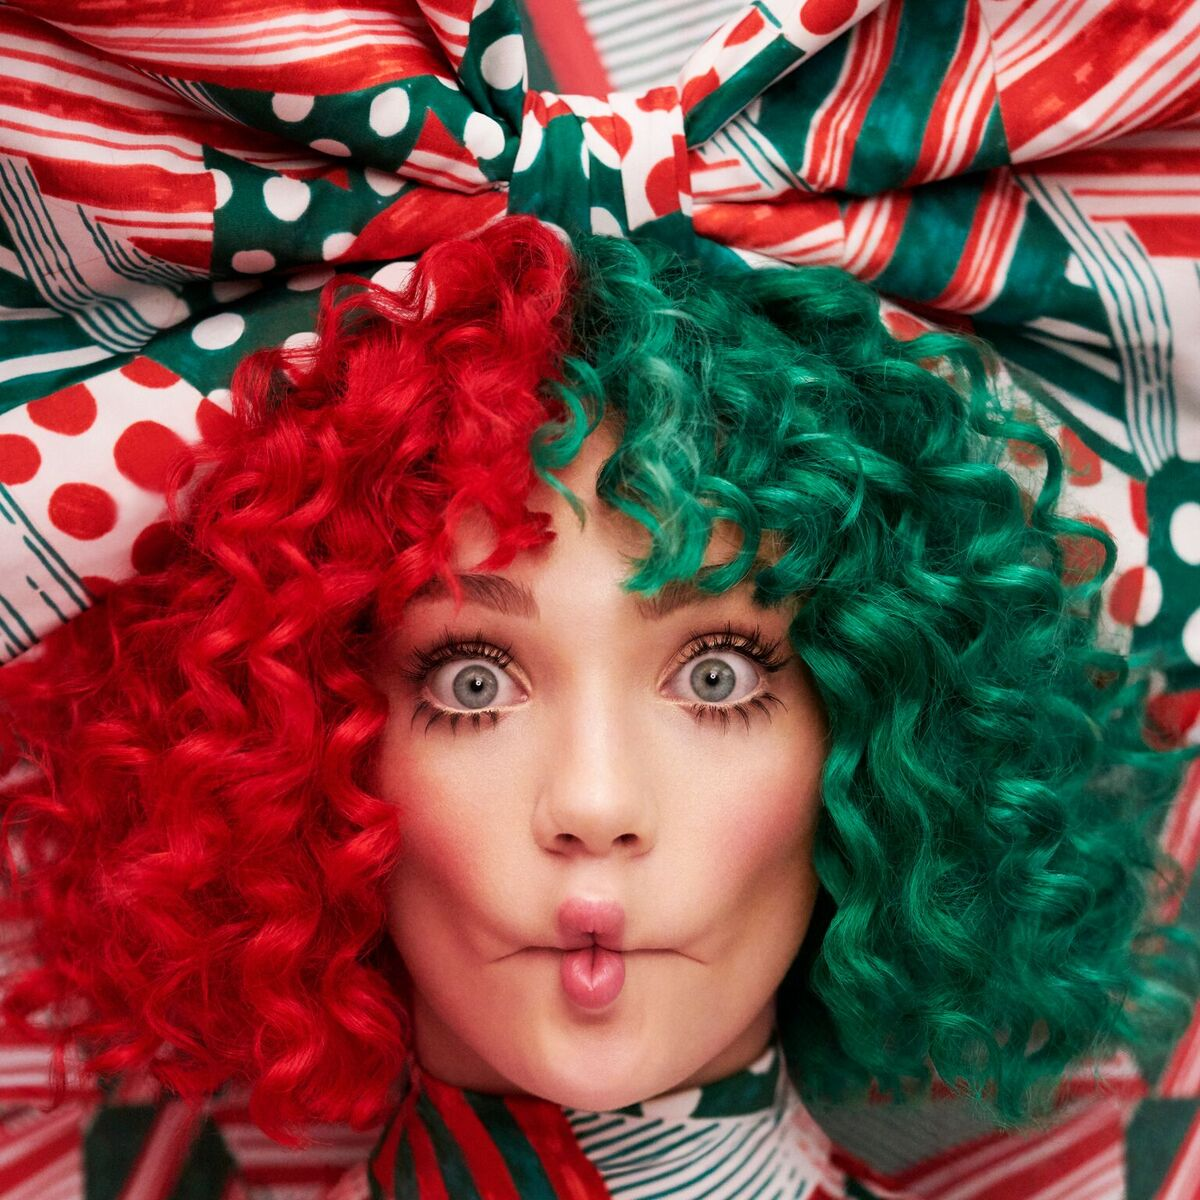 "SIA UNVEILS NEW TRACK """"SANTA'S COMING FOR US"""""